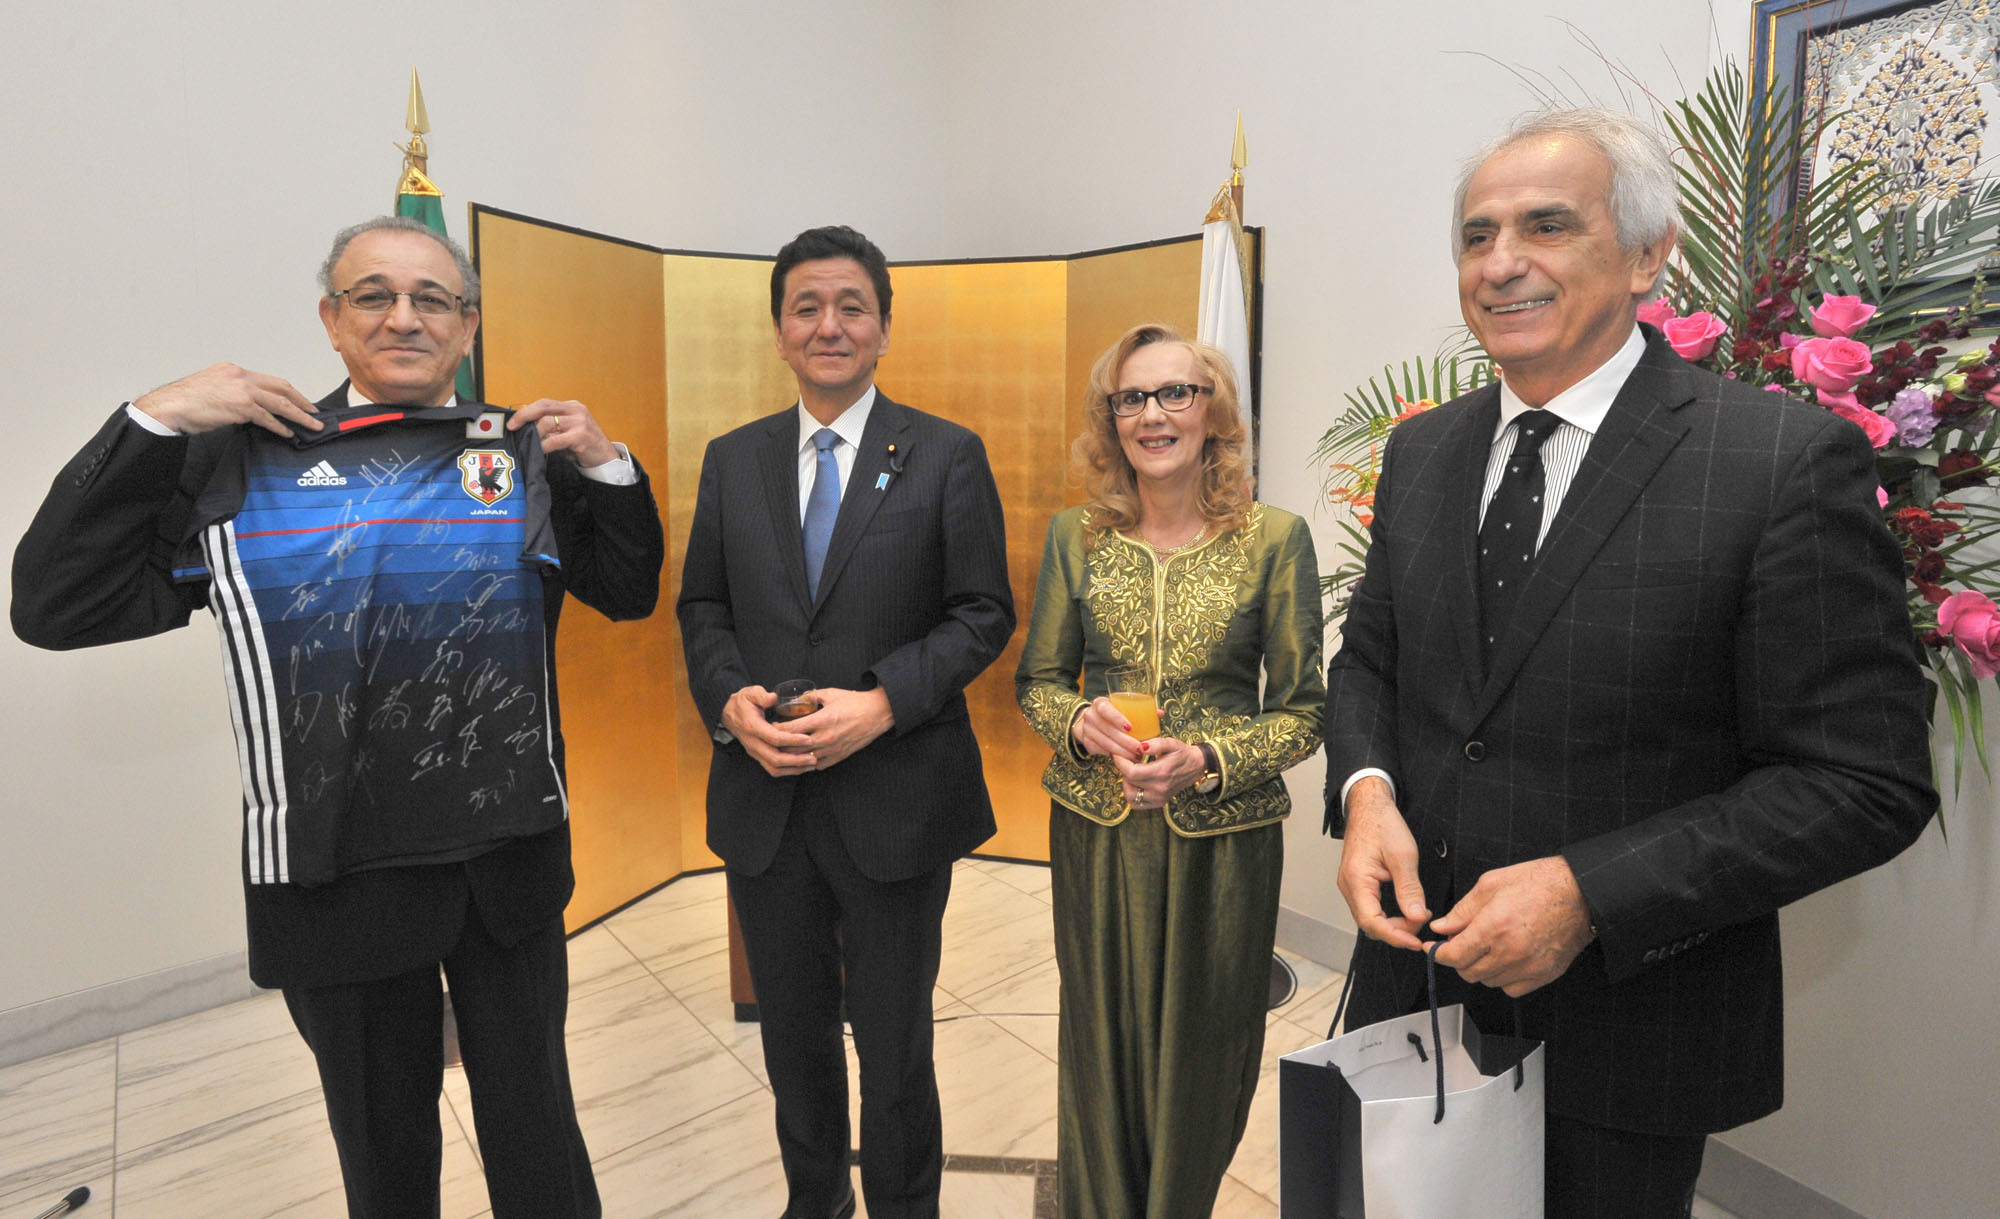 Algeria's Ambassador Mohamed El Amine Bencherif (left) holds an autographed jersey given to him by Japan National Soccer Team manager Vahid Halilhodzic (right) during a reception celebrating Algeria's 62nd national day at the embassy in Tokyo on Nov. 25. They were joined by State Minister for Foreign Affairs Nobuo Kishi (second from left) and the ambassador's wife Amira. | YOSHIAKI MIURA